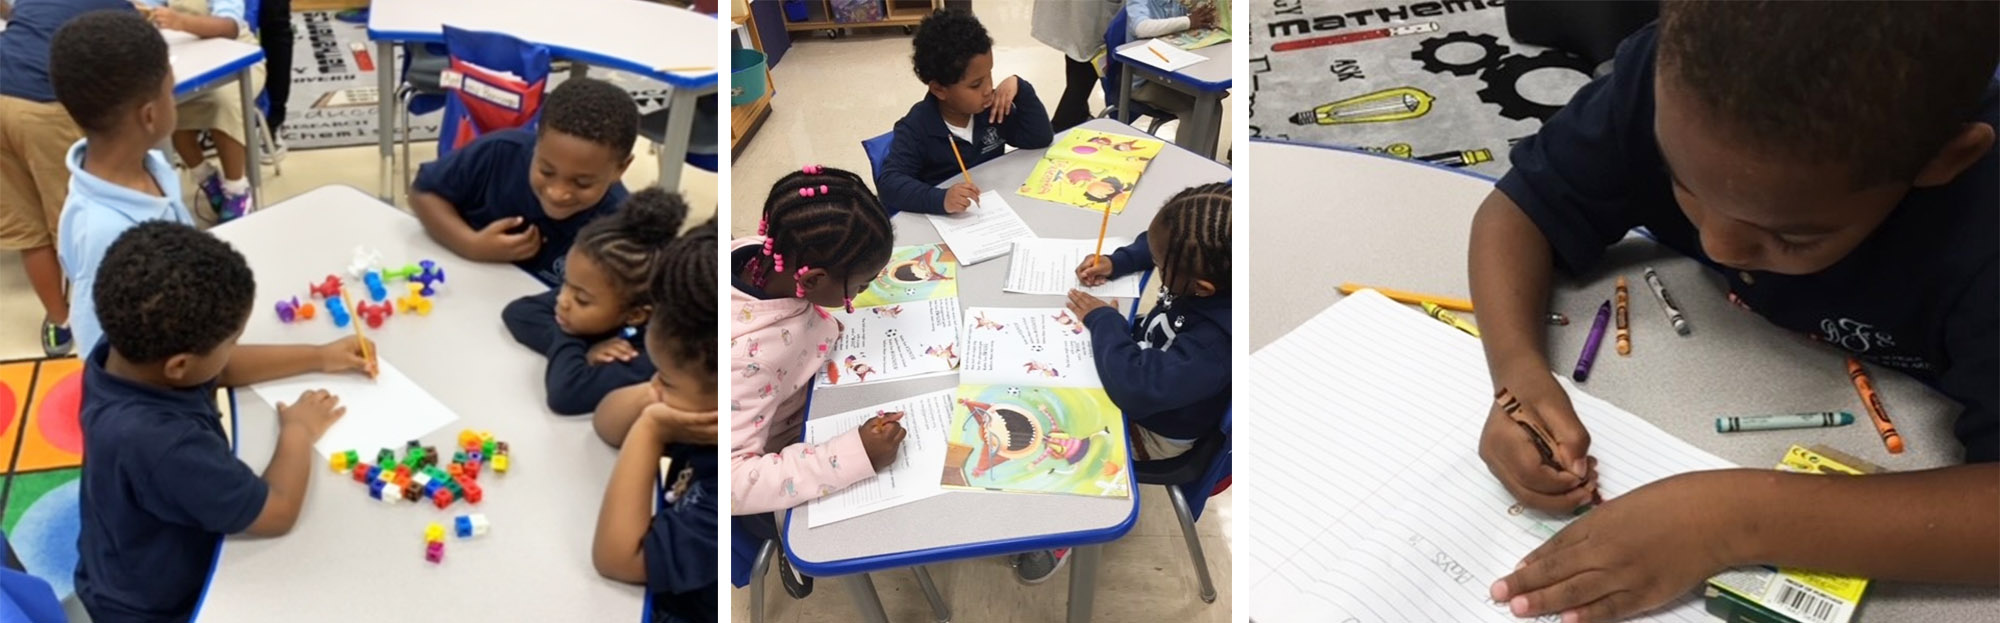 Students engaged in learning in the classroom